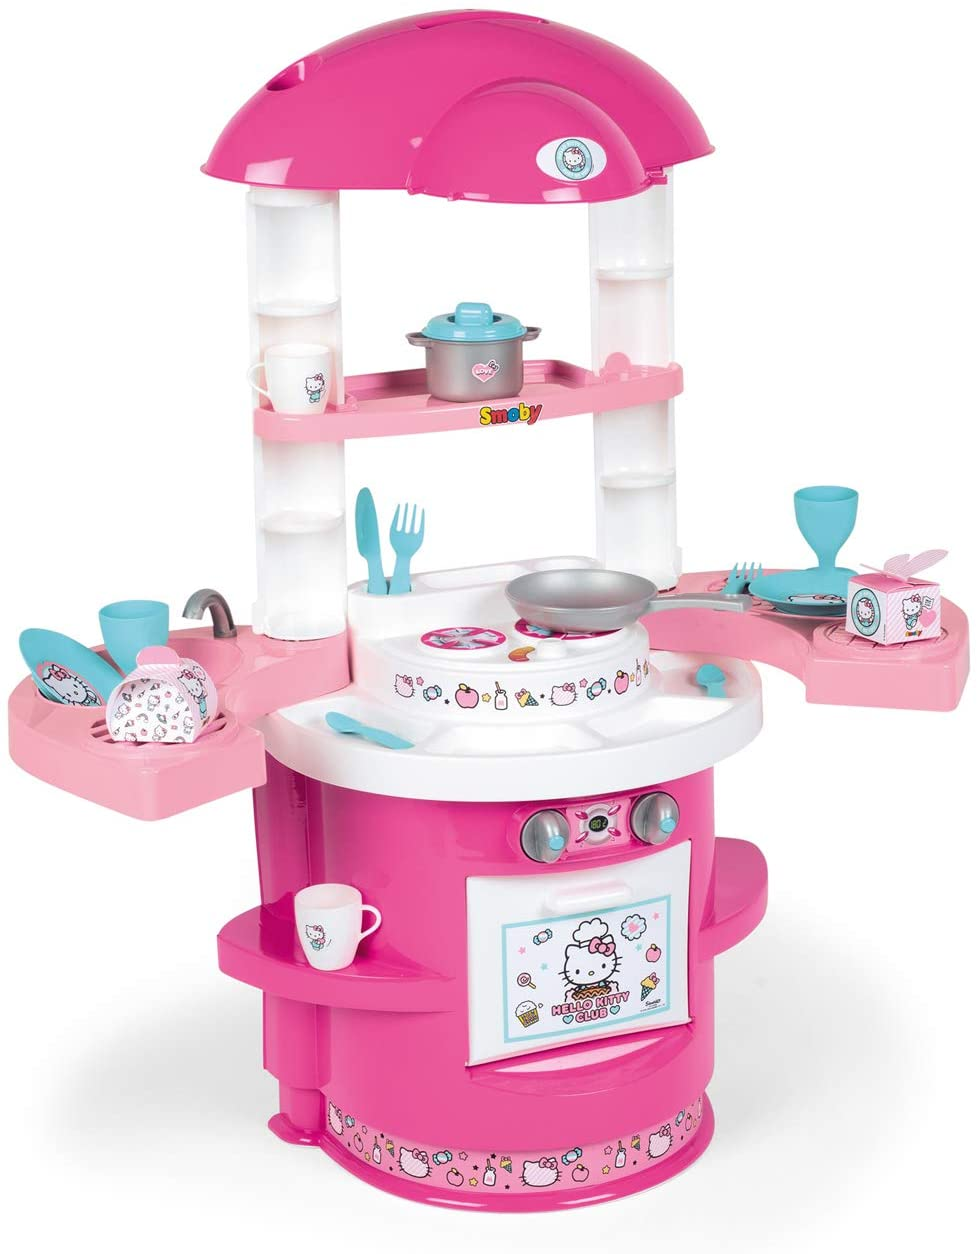 Cocina Hello Kitty Cooky de Smoby